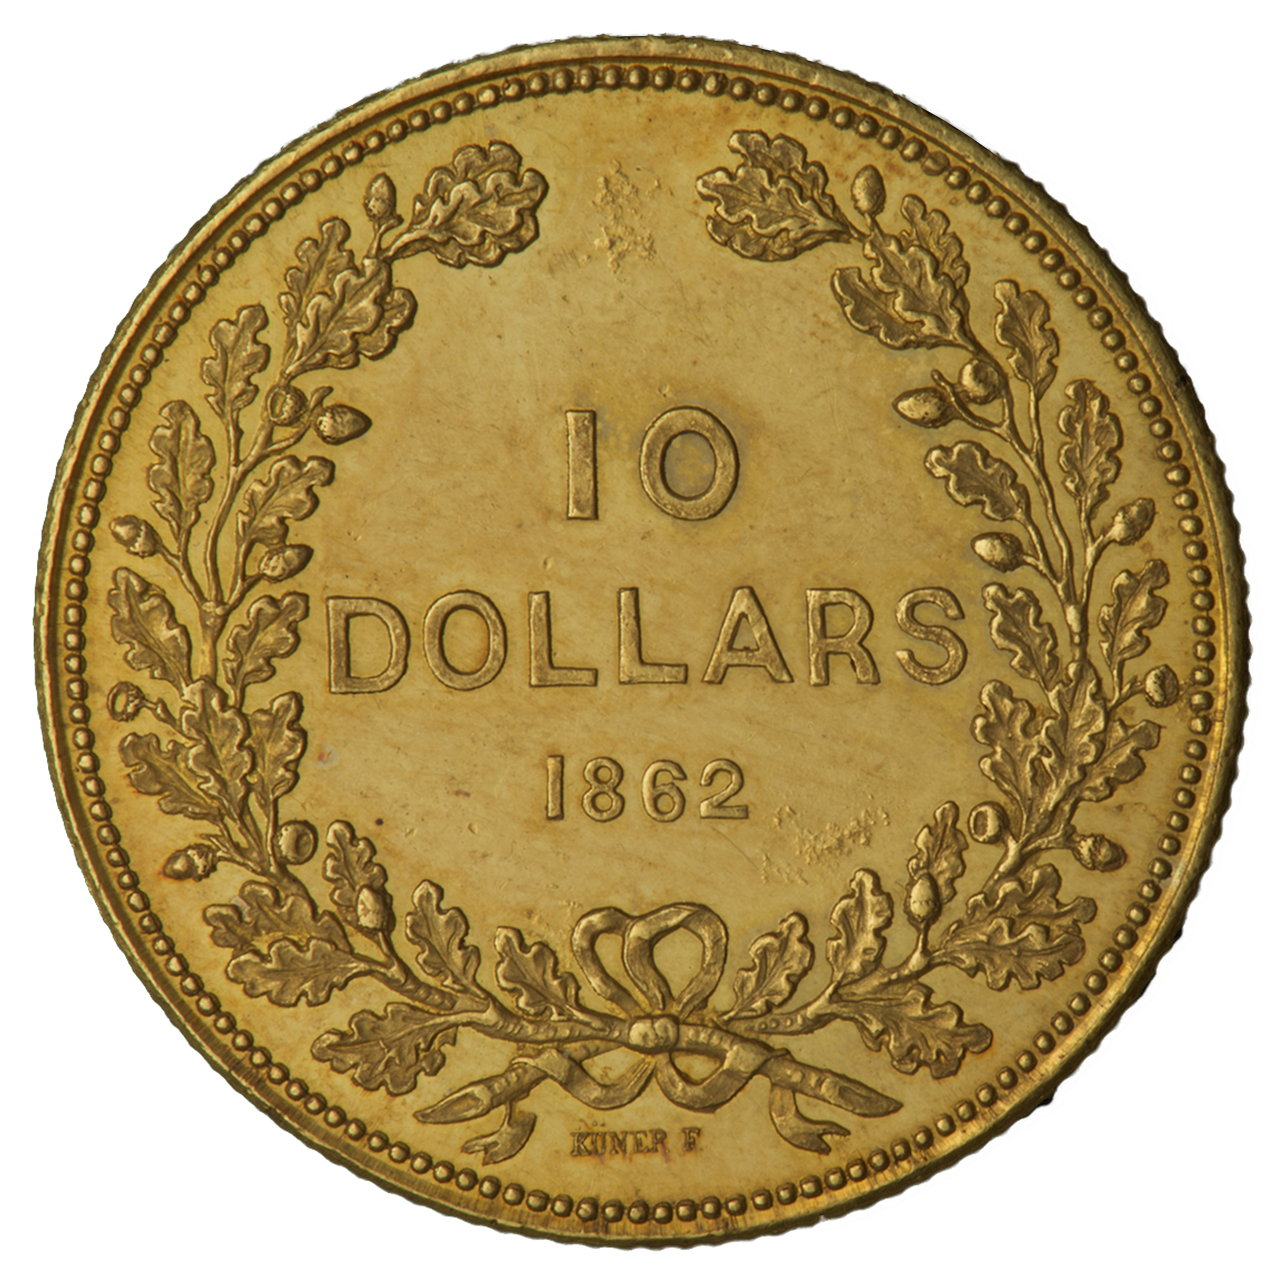 BC gold $10 coin